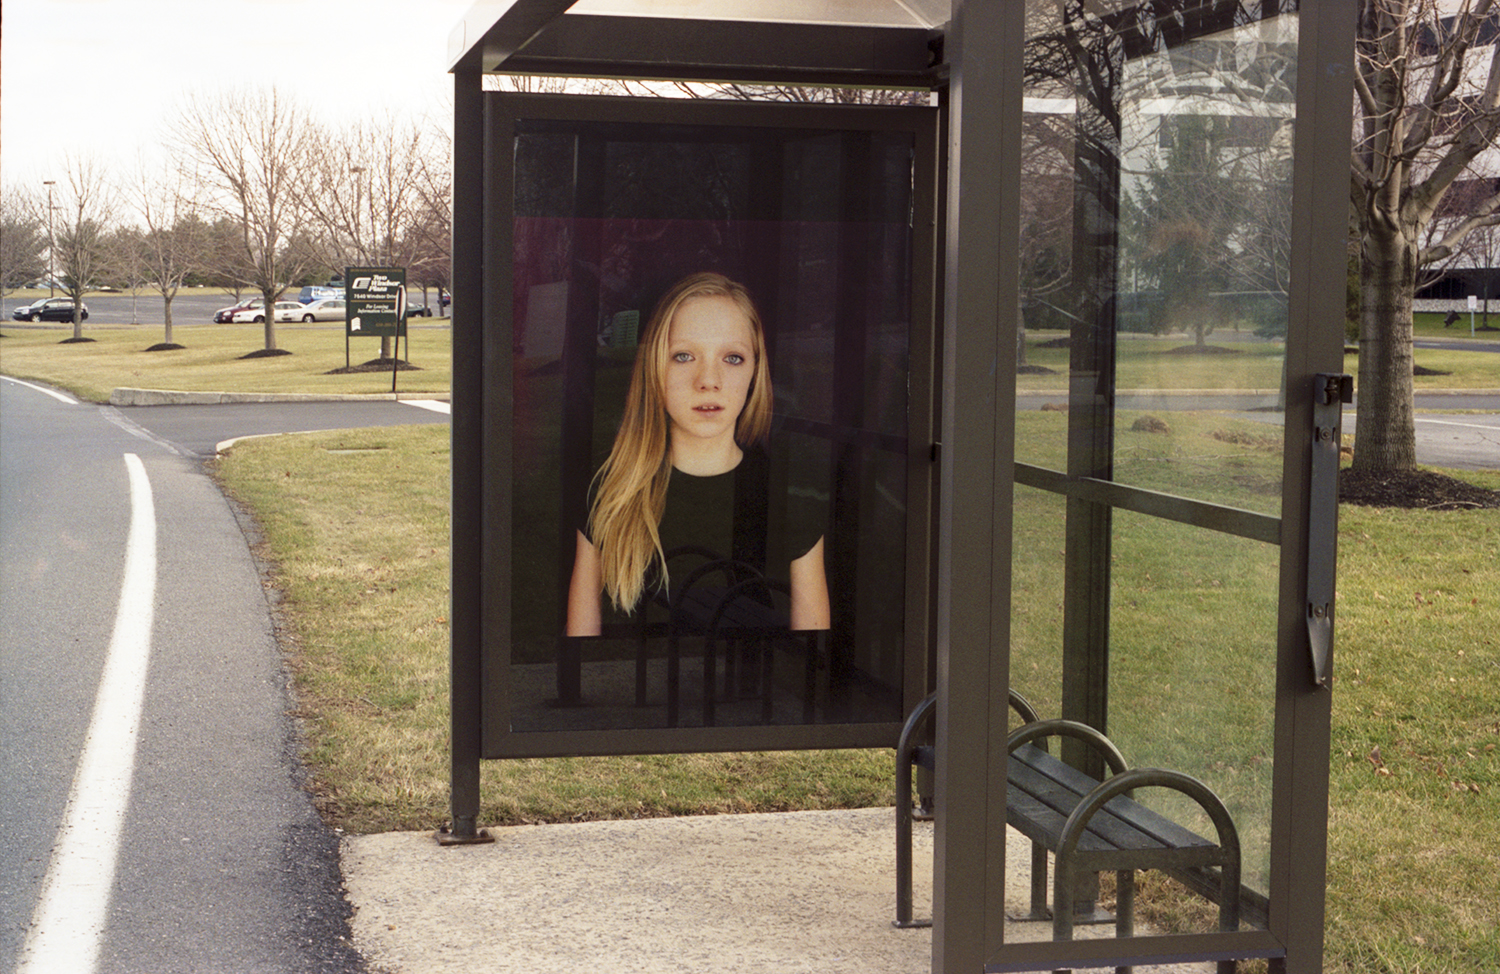 Interior Portraits, 1/11 Bus Shelters, Lehigh Valley, PA 2005